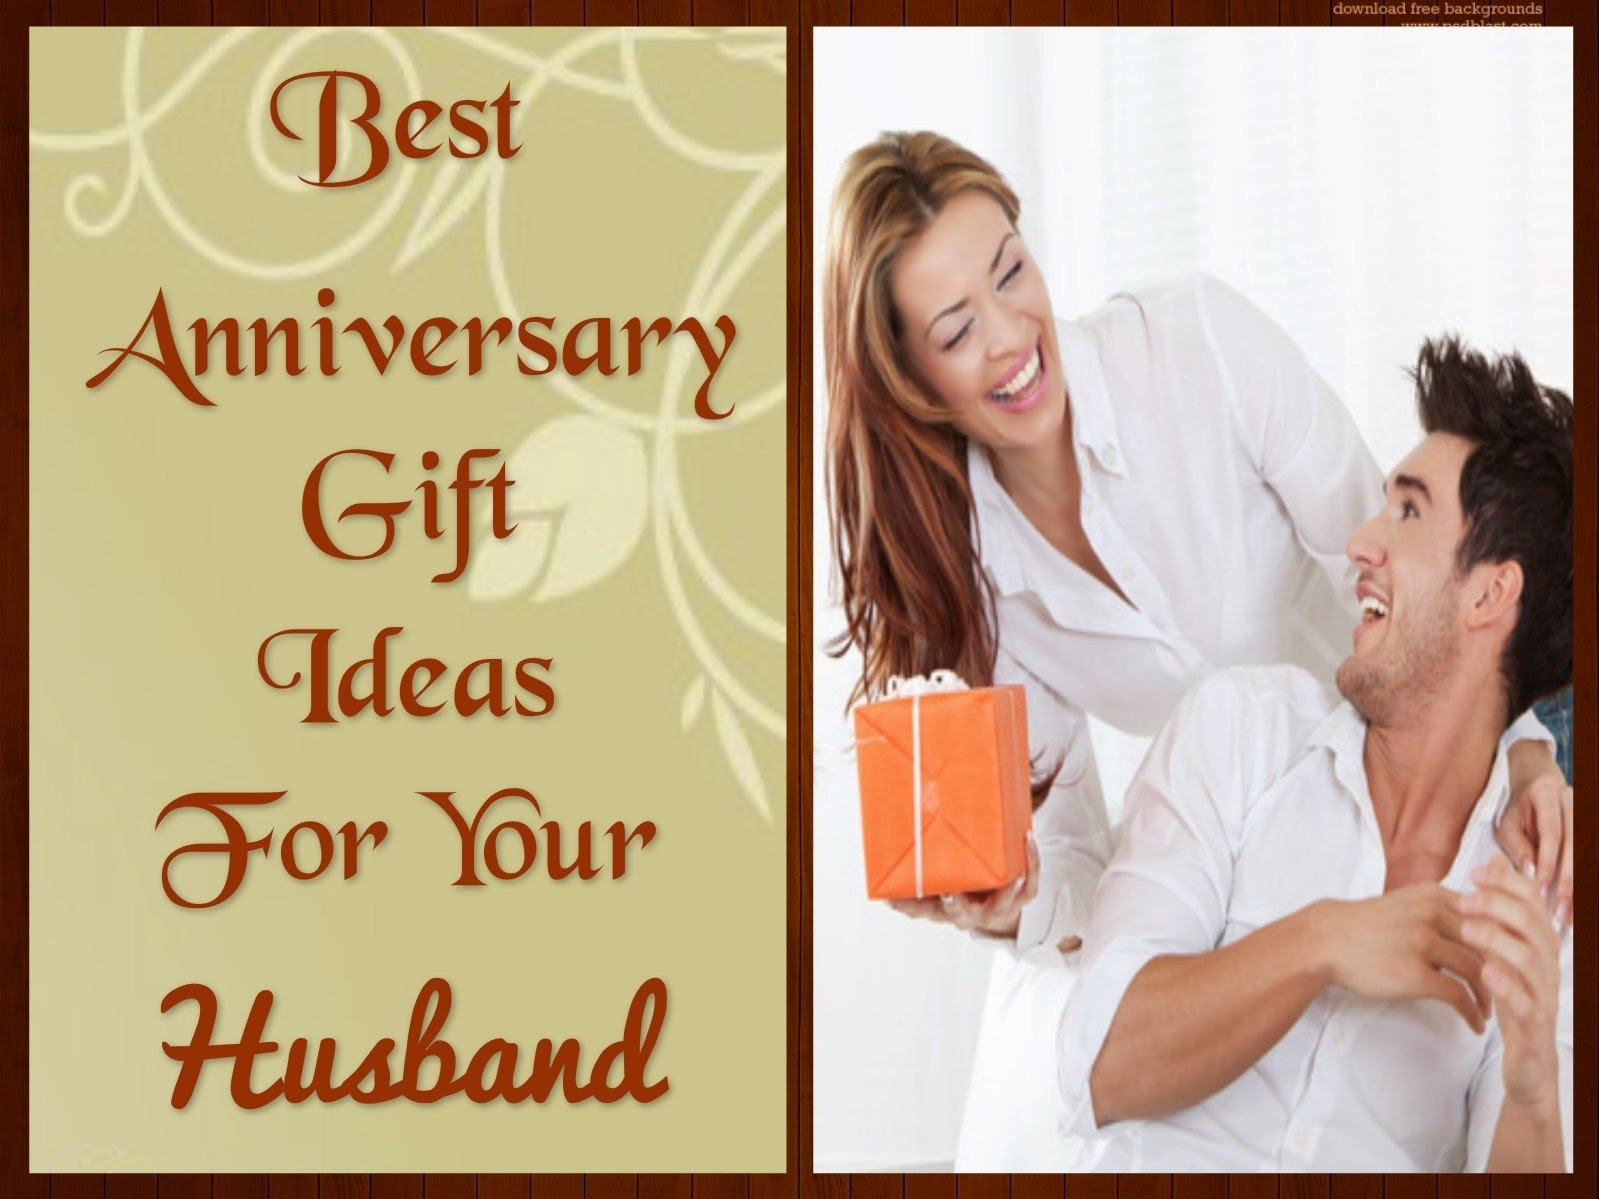 10 Ideal Anniversary Gift Ideas For Husband wedding anniversary gifts best anniversary gift ideas for your husband 2020